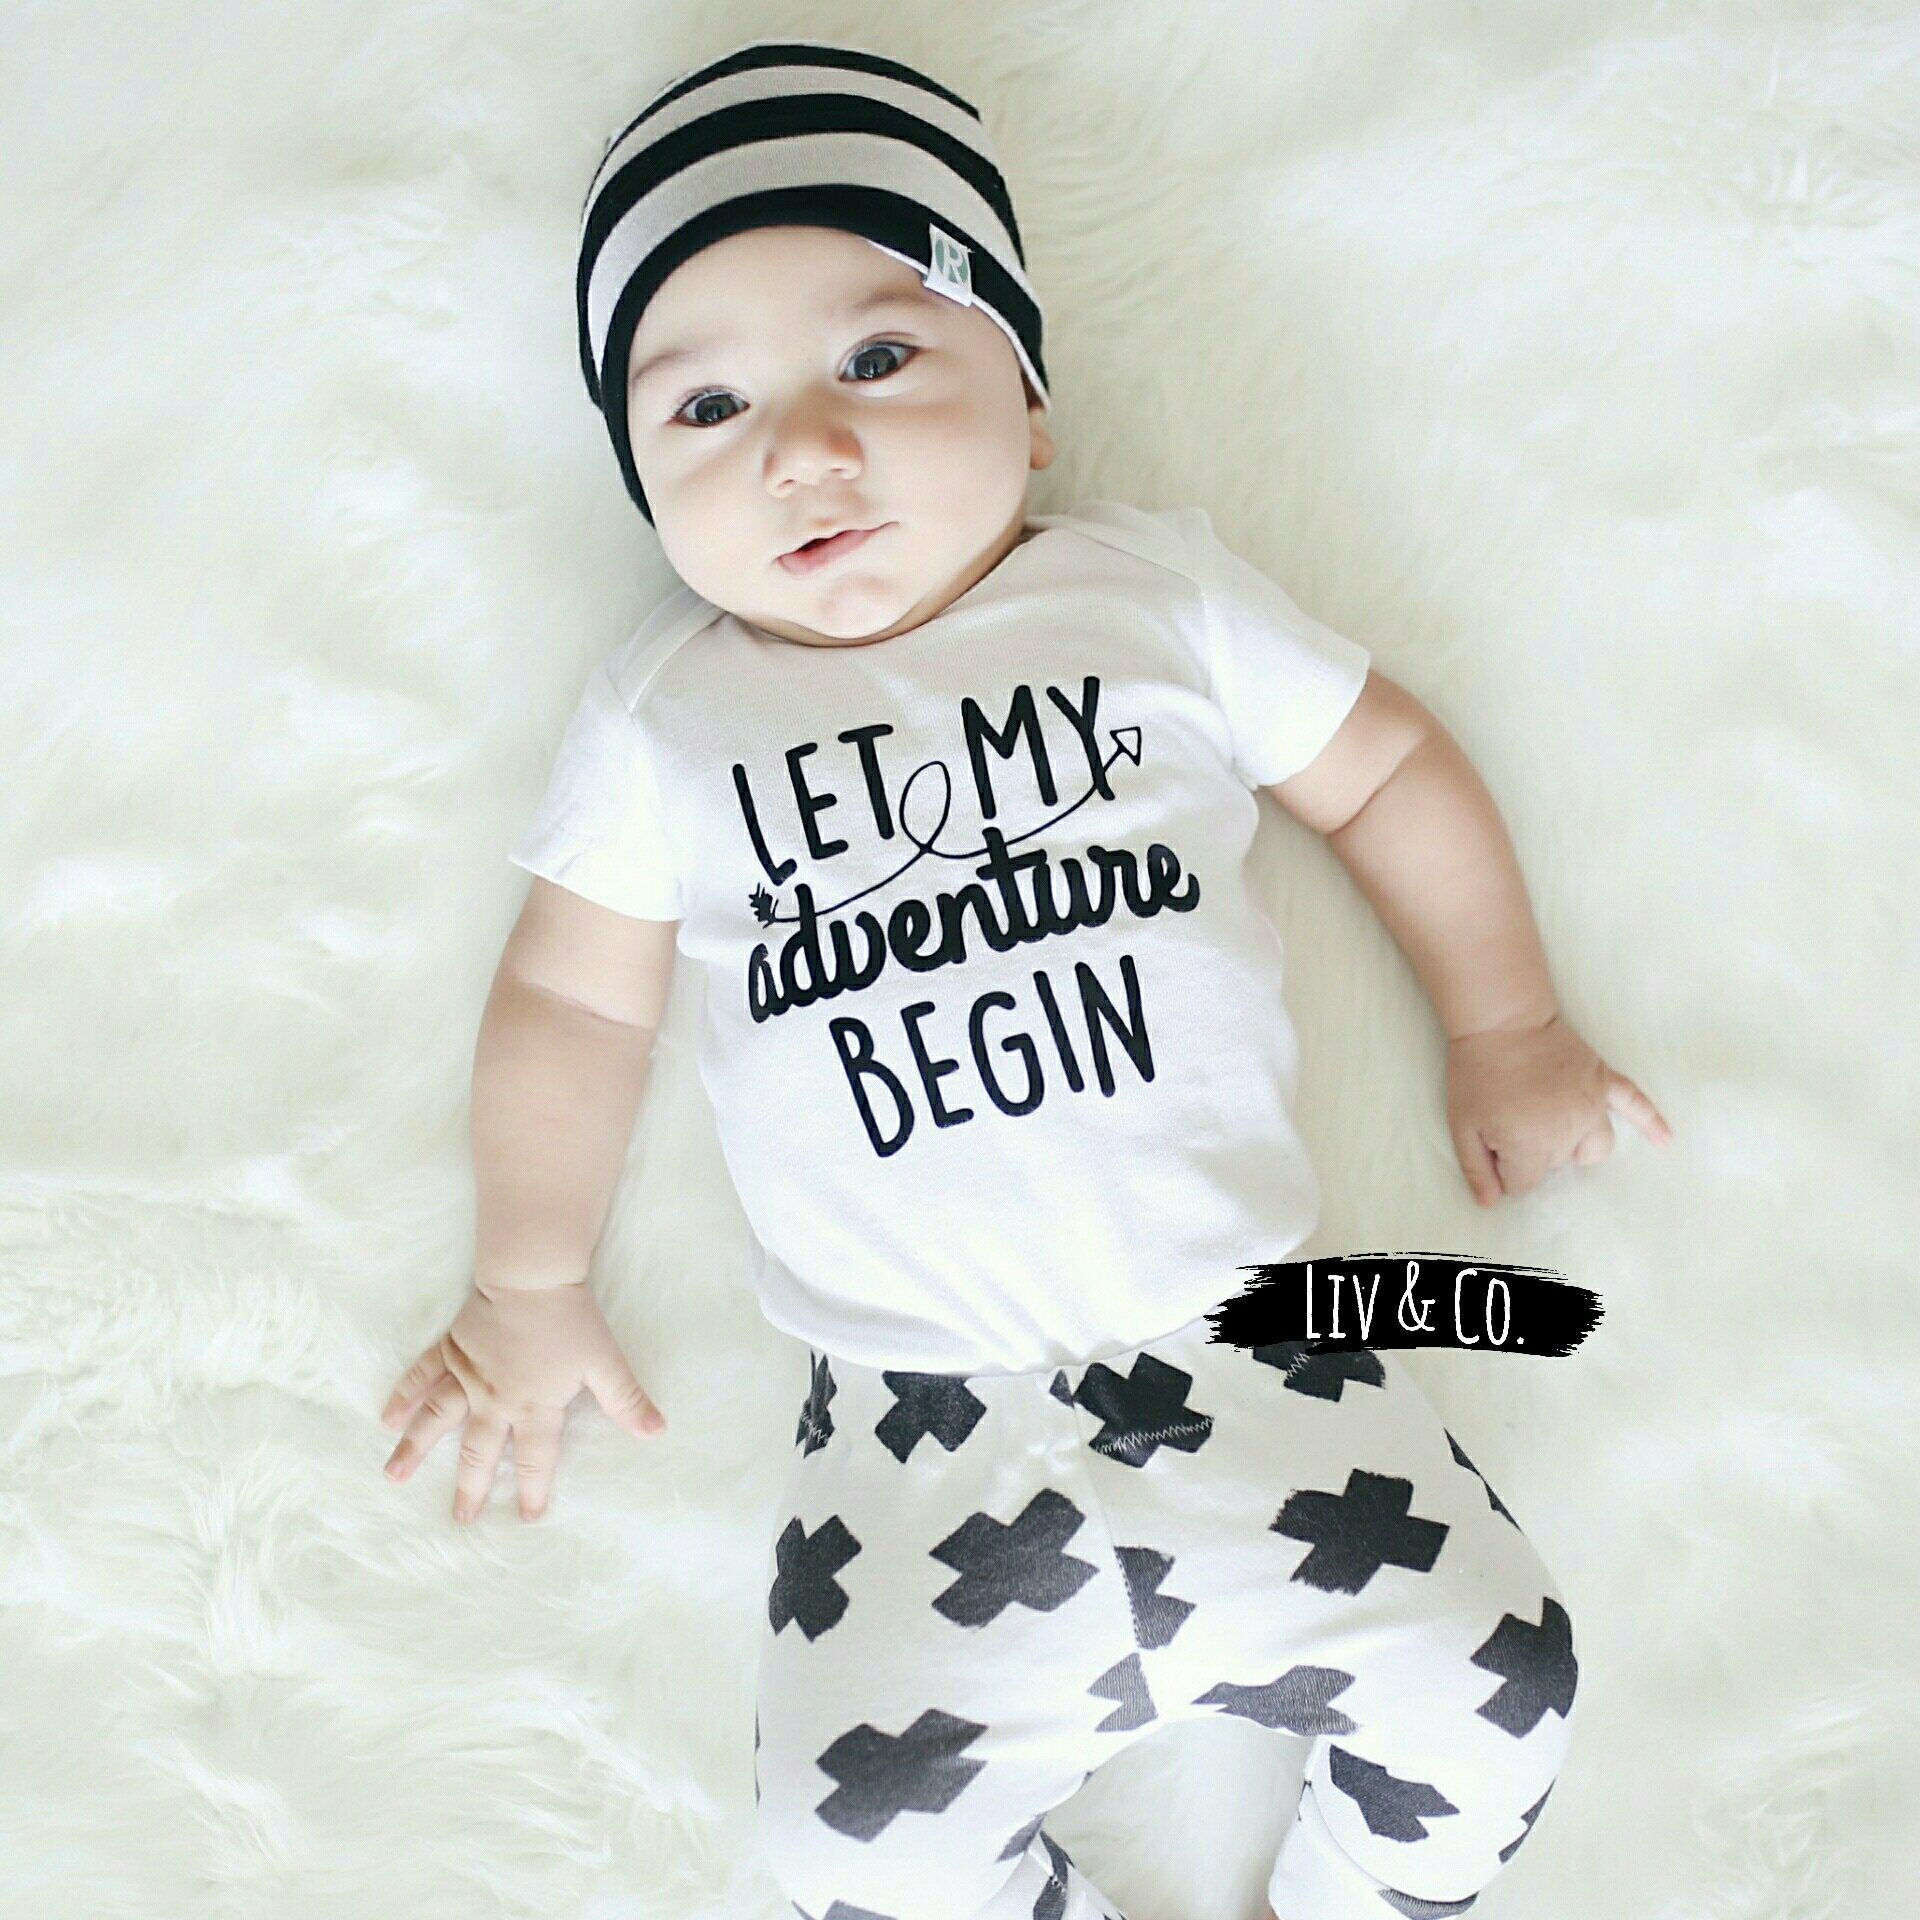 Baby boy clothes baby girl clothes baby coming home outfit infant clothing newborn photo outfit baby hospital outfit liv co